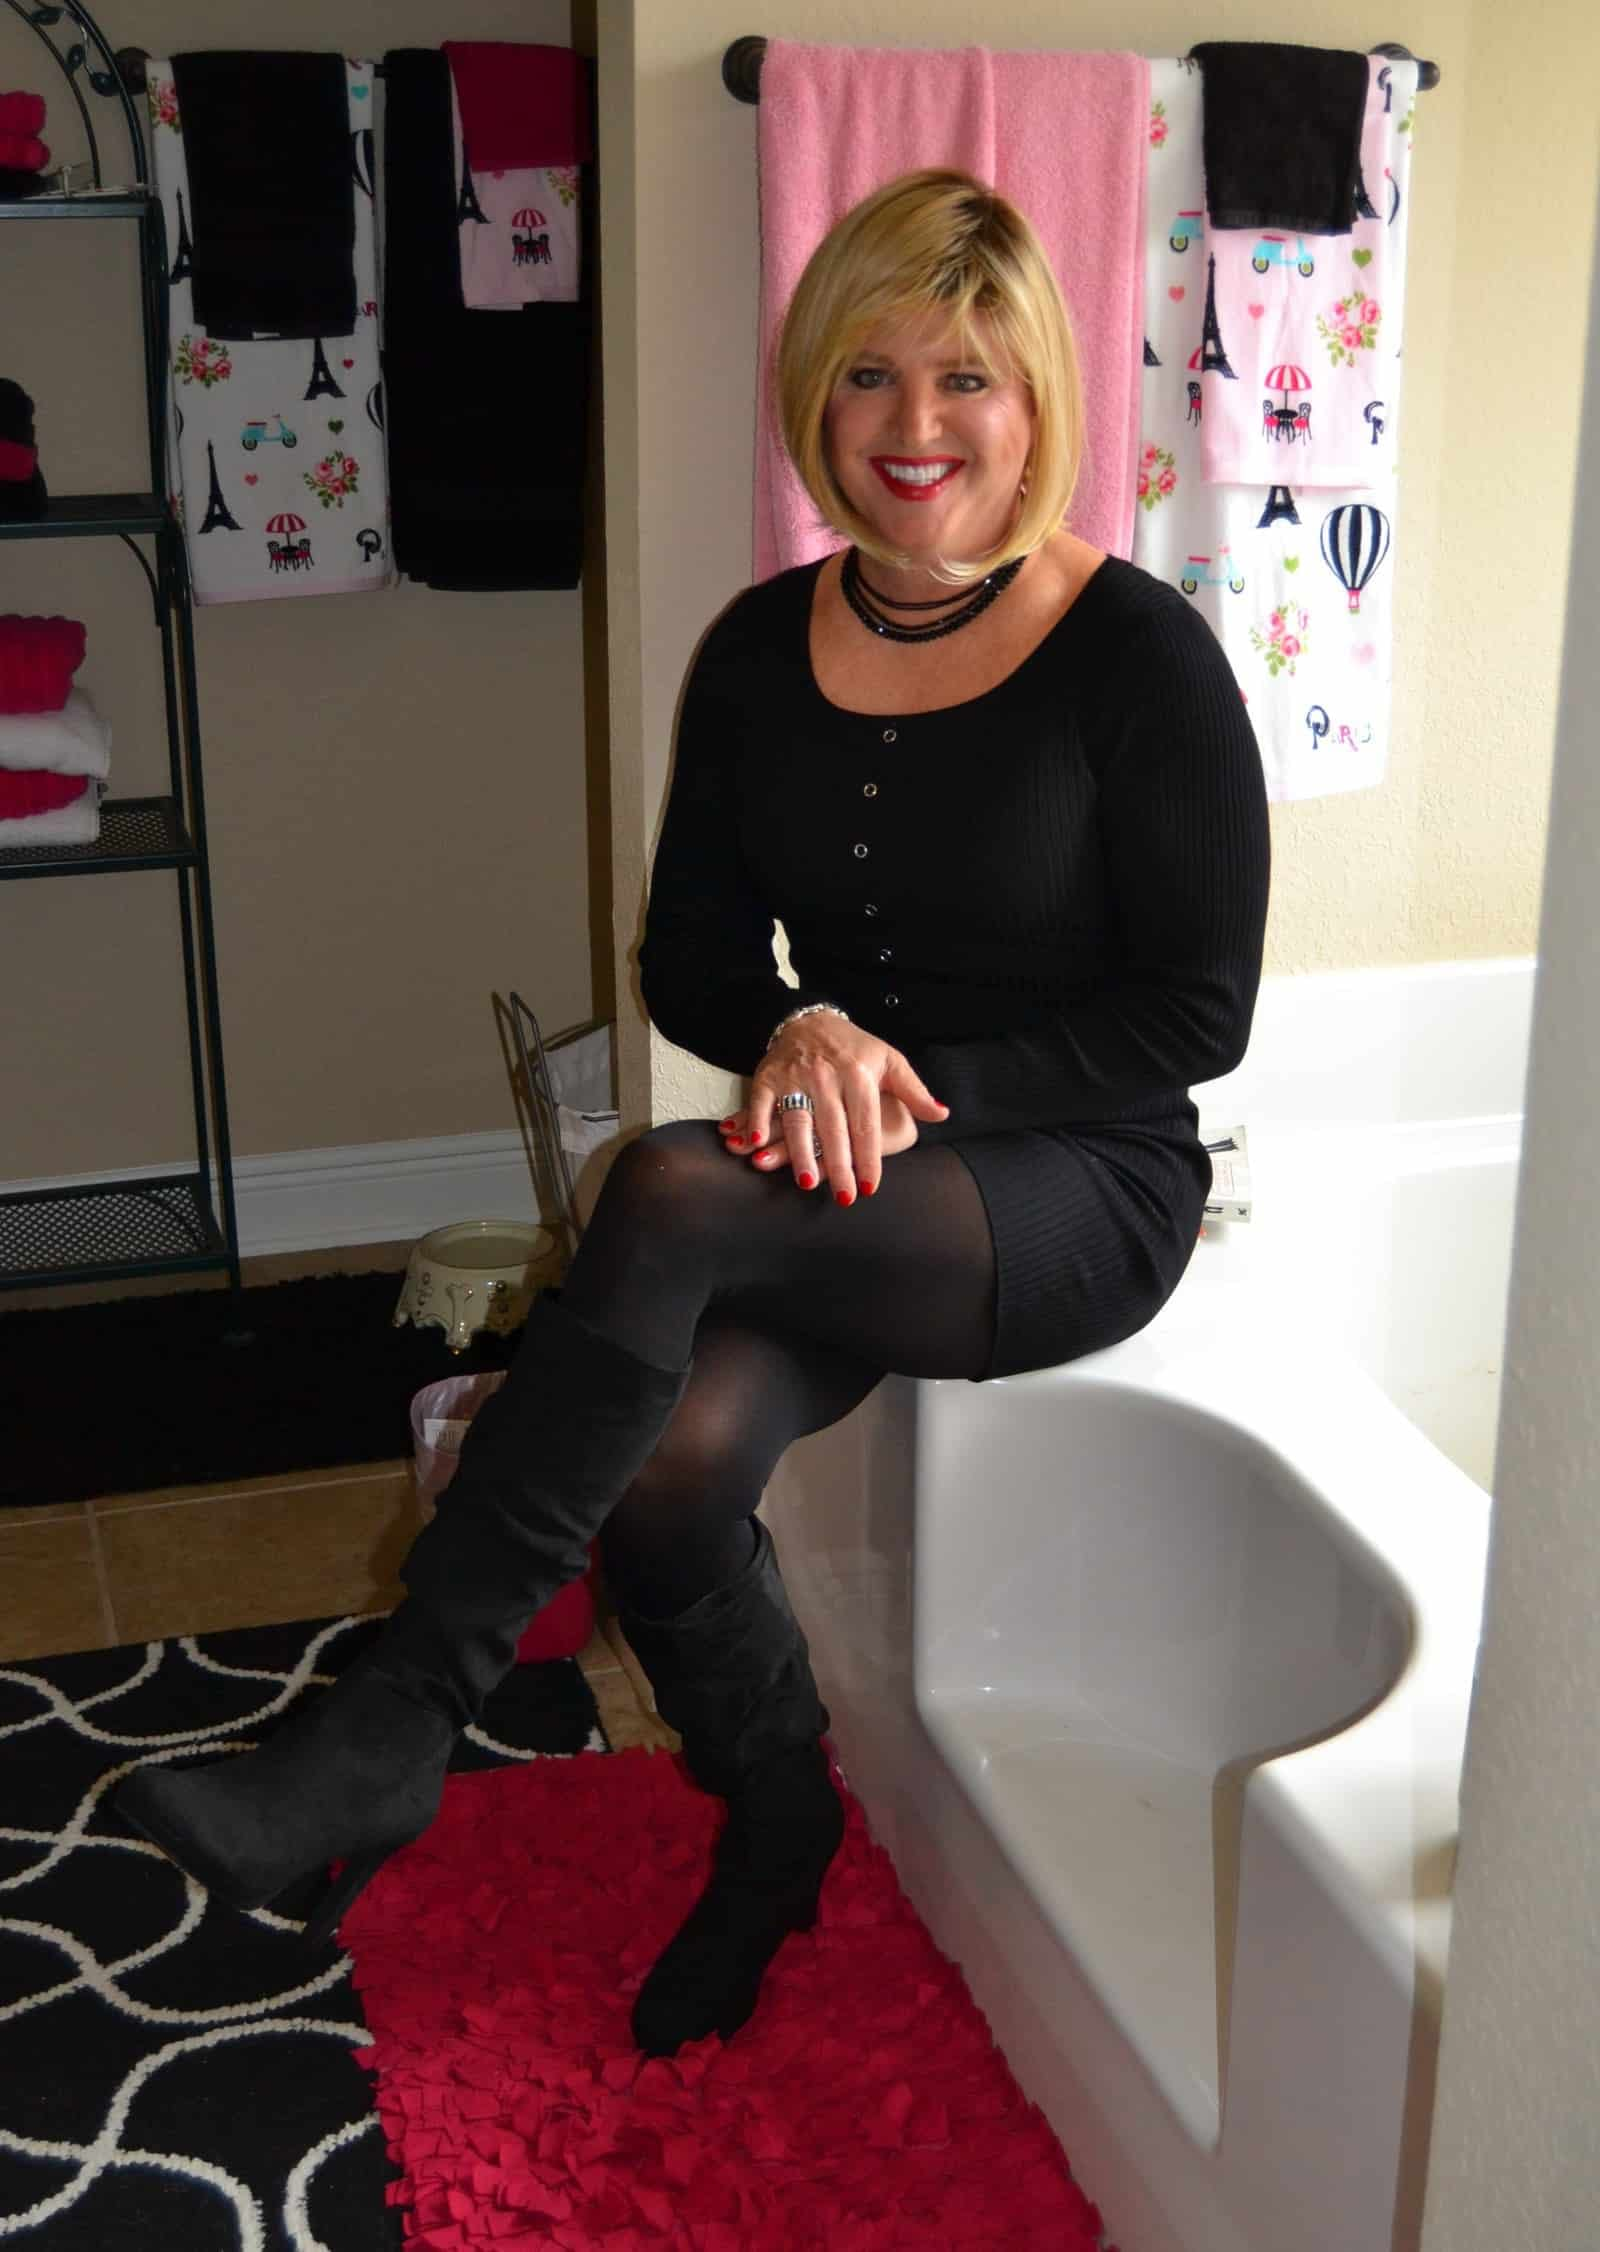 Back Tight Sweater Dress On Tights With Suede Boots In The Tub!